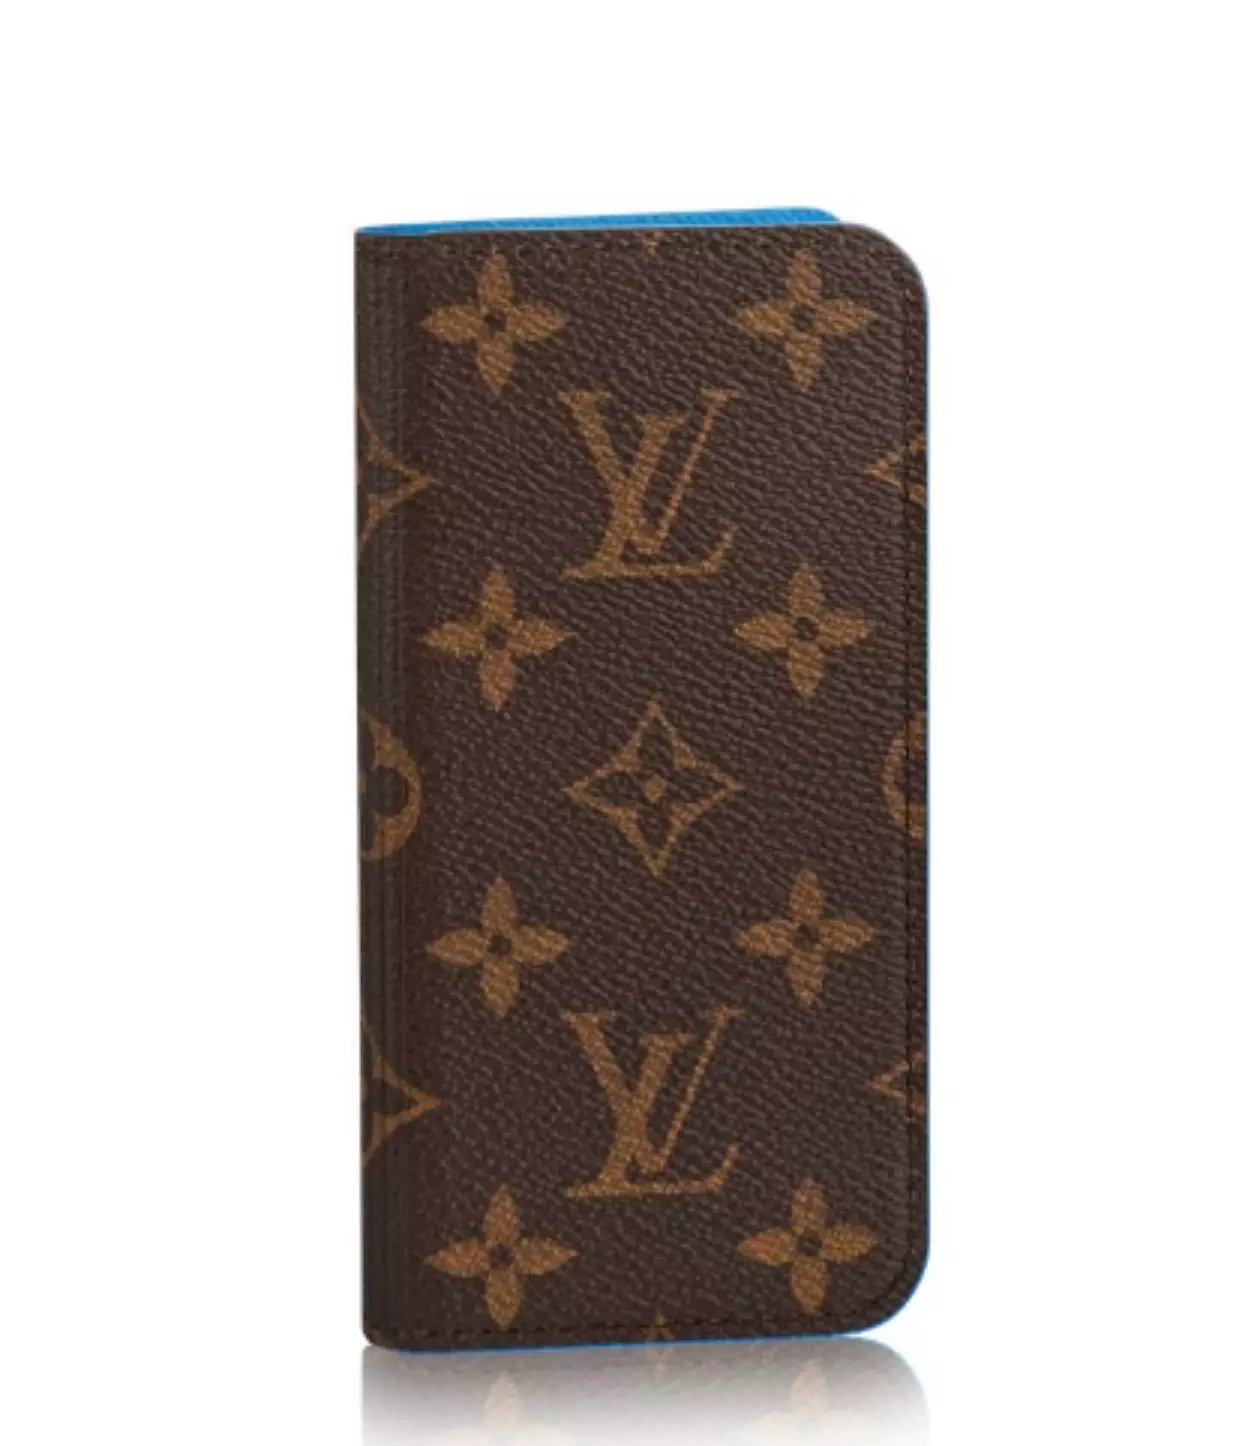 make your own case for iphone 8 iphone 8 cover personalised Louis Vuitton iphone 8 case iphone 8 cover case juice pack for iphone 8 cheap designer iphone 8 cases mophie juice pack plus iphone 8 iphone cell phone covers apple store iphone cases